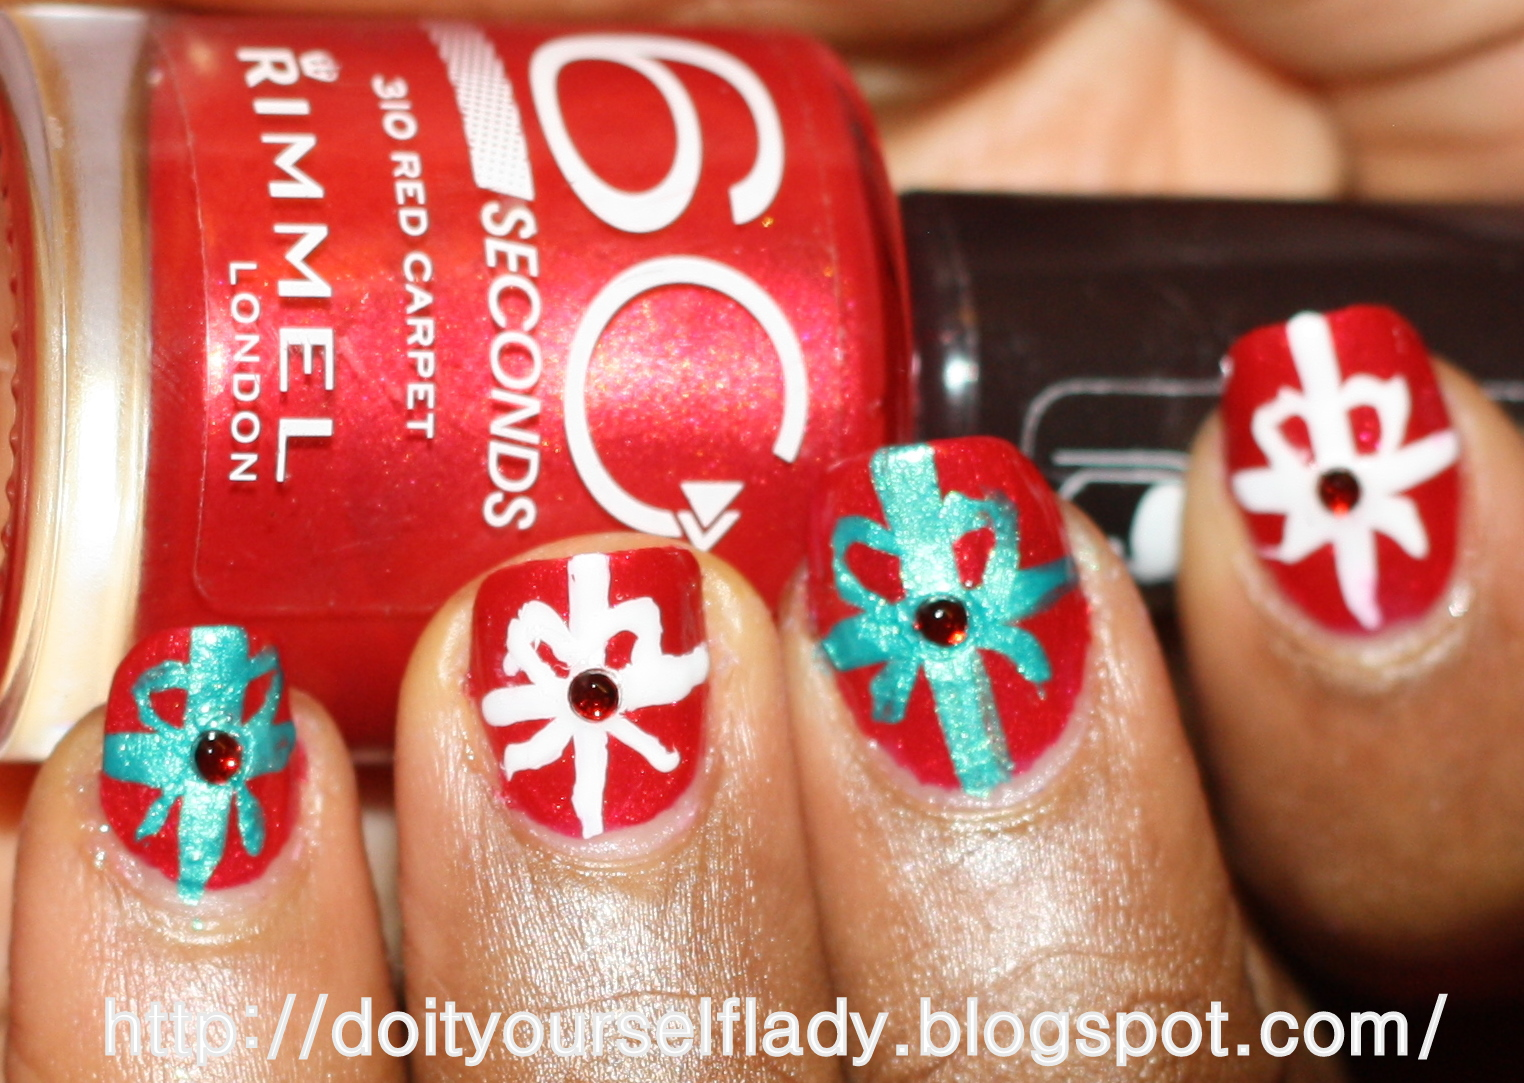 The Do It Yourself Lady: Christmas nails: Gift wrapping